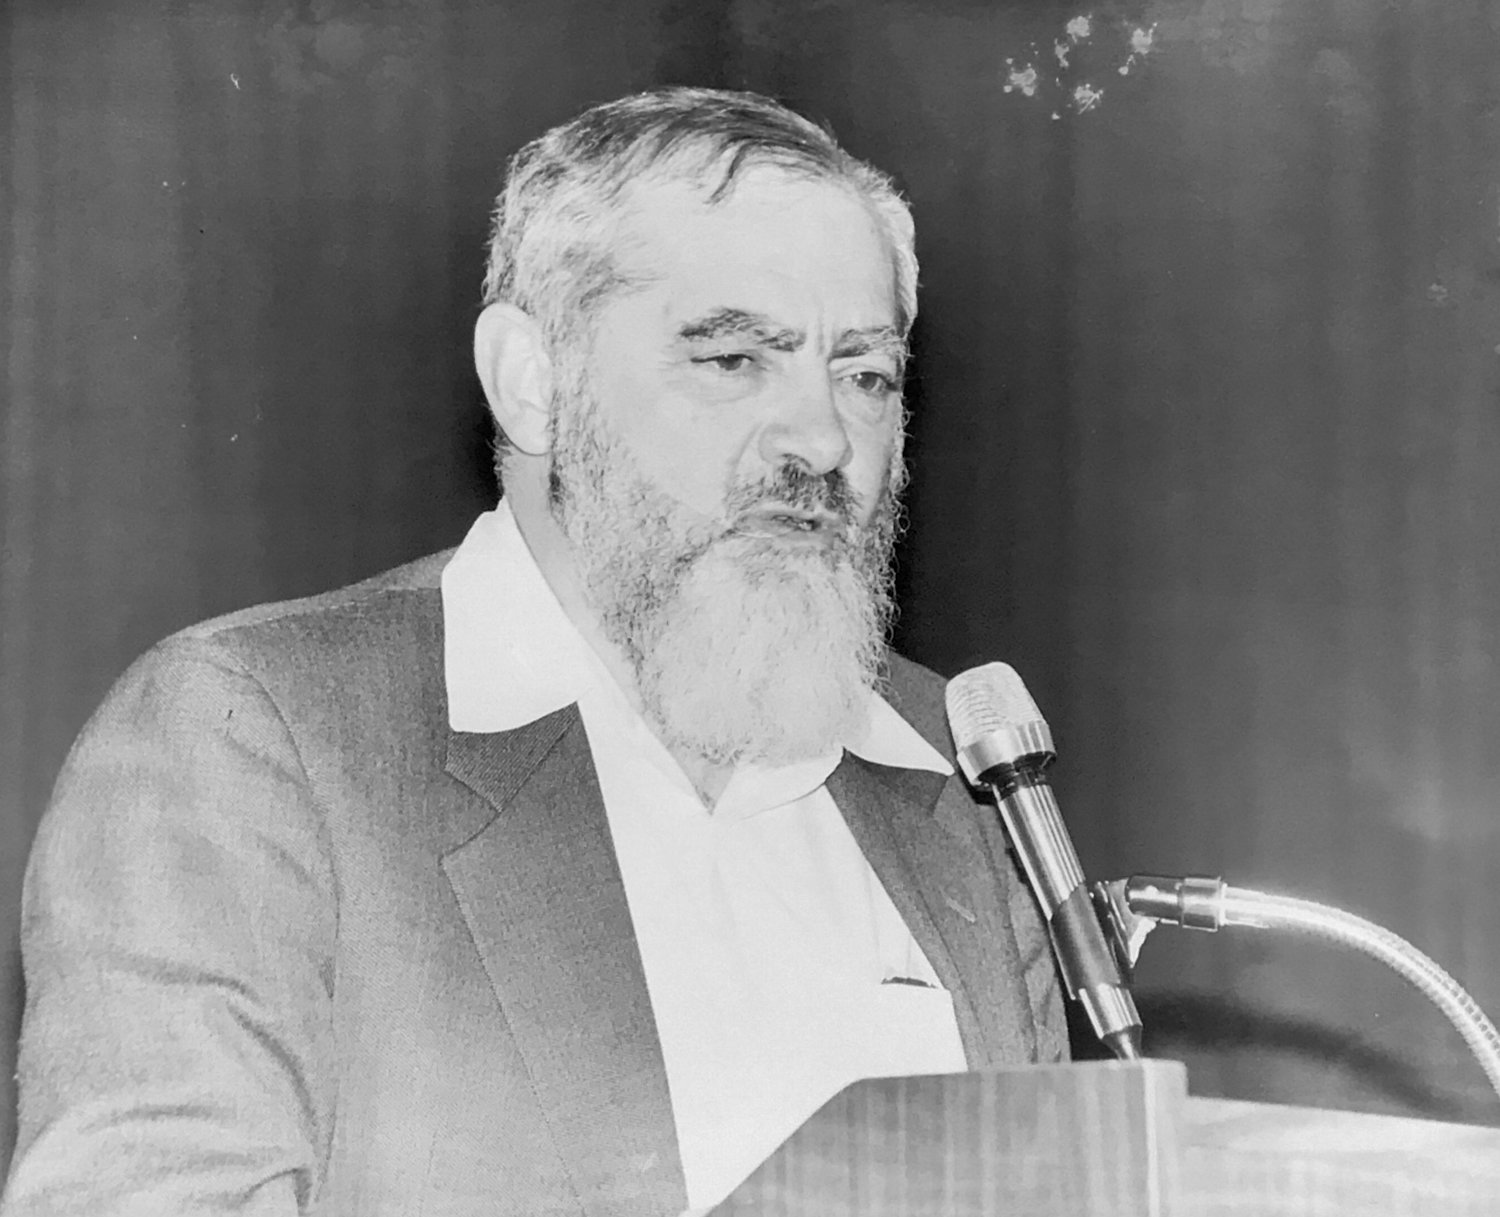 Rabbi Meir Kahane had sharp words for The Riverdale Press and two local rabbis in a speech he gave at The Riverdale Y on Feb. 25, 1990. He expressed what many described as extremist views in a 1984 debate about the future of Israel between him and then-Harvard Law School professor Alan Dershowitz.